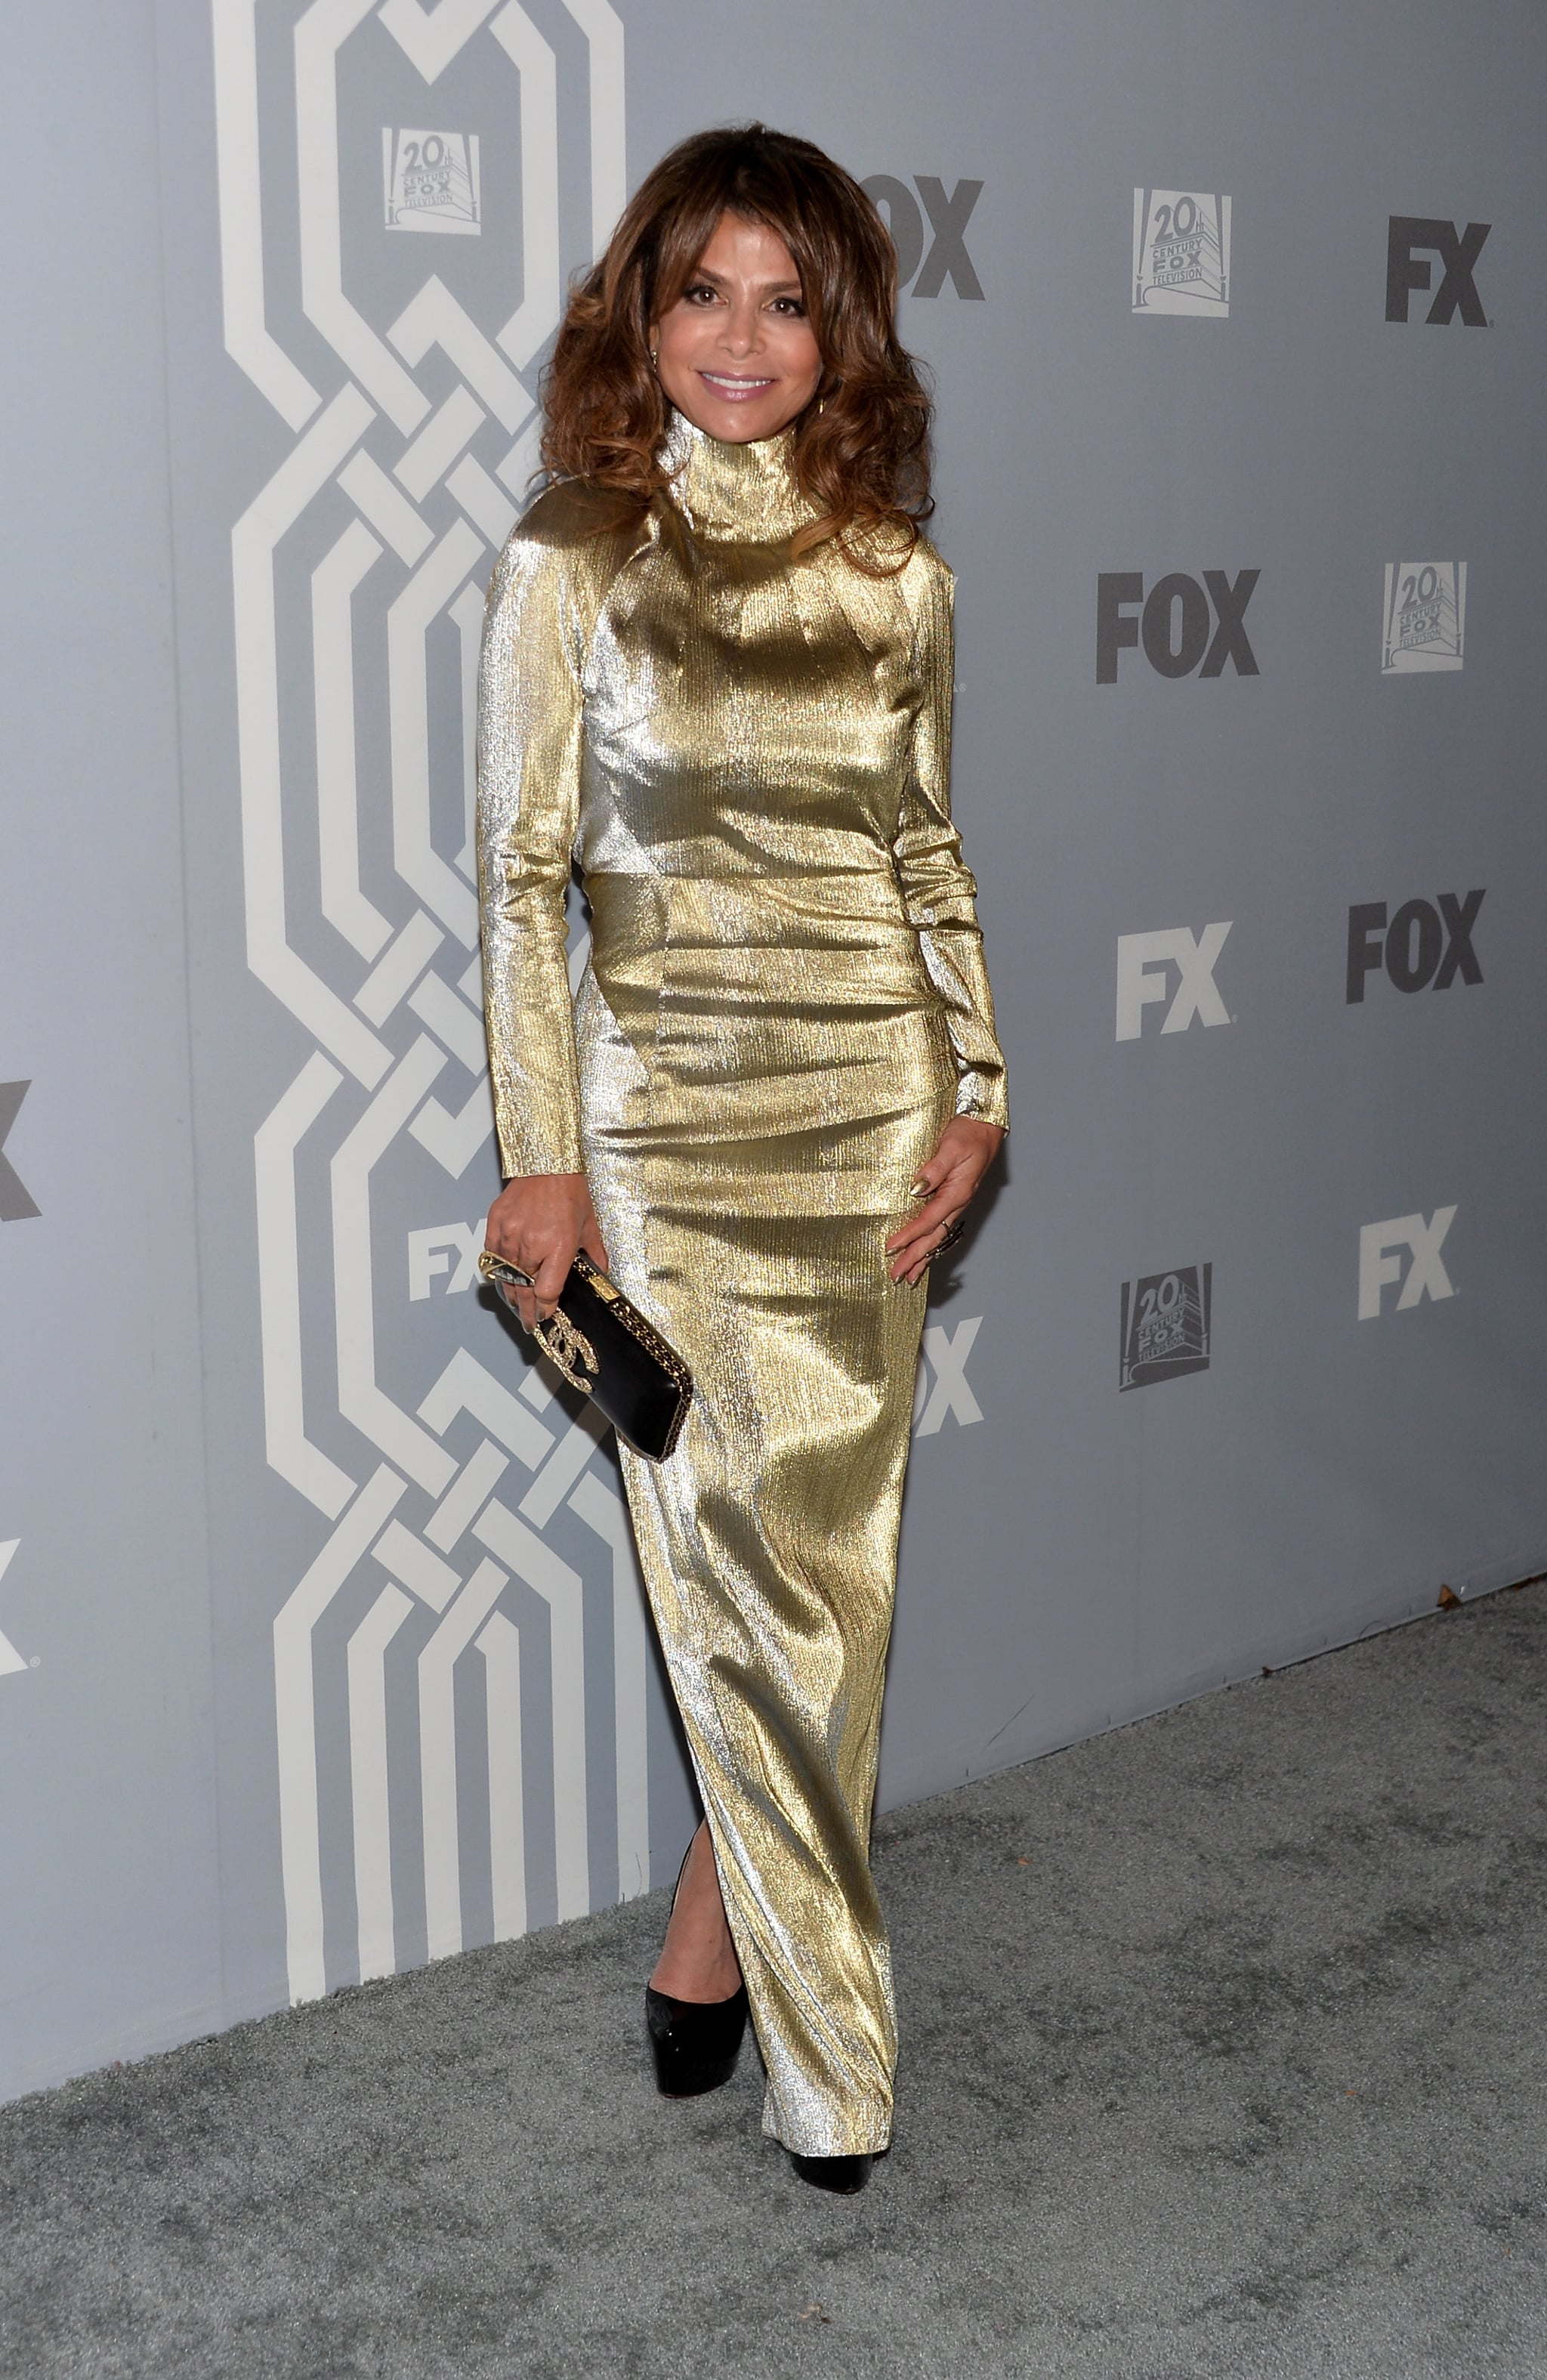 Paula Abdul celebrated at Fox's post-Emmys party in a gilded long-sleeved dress.